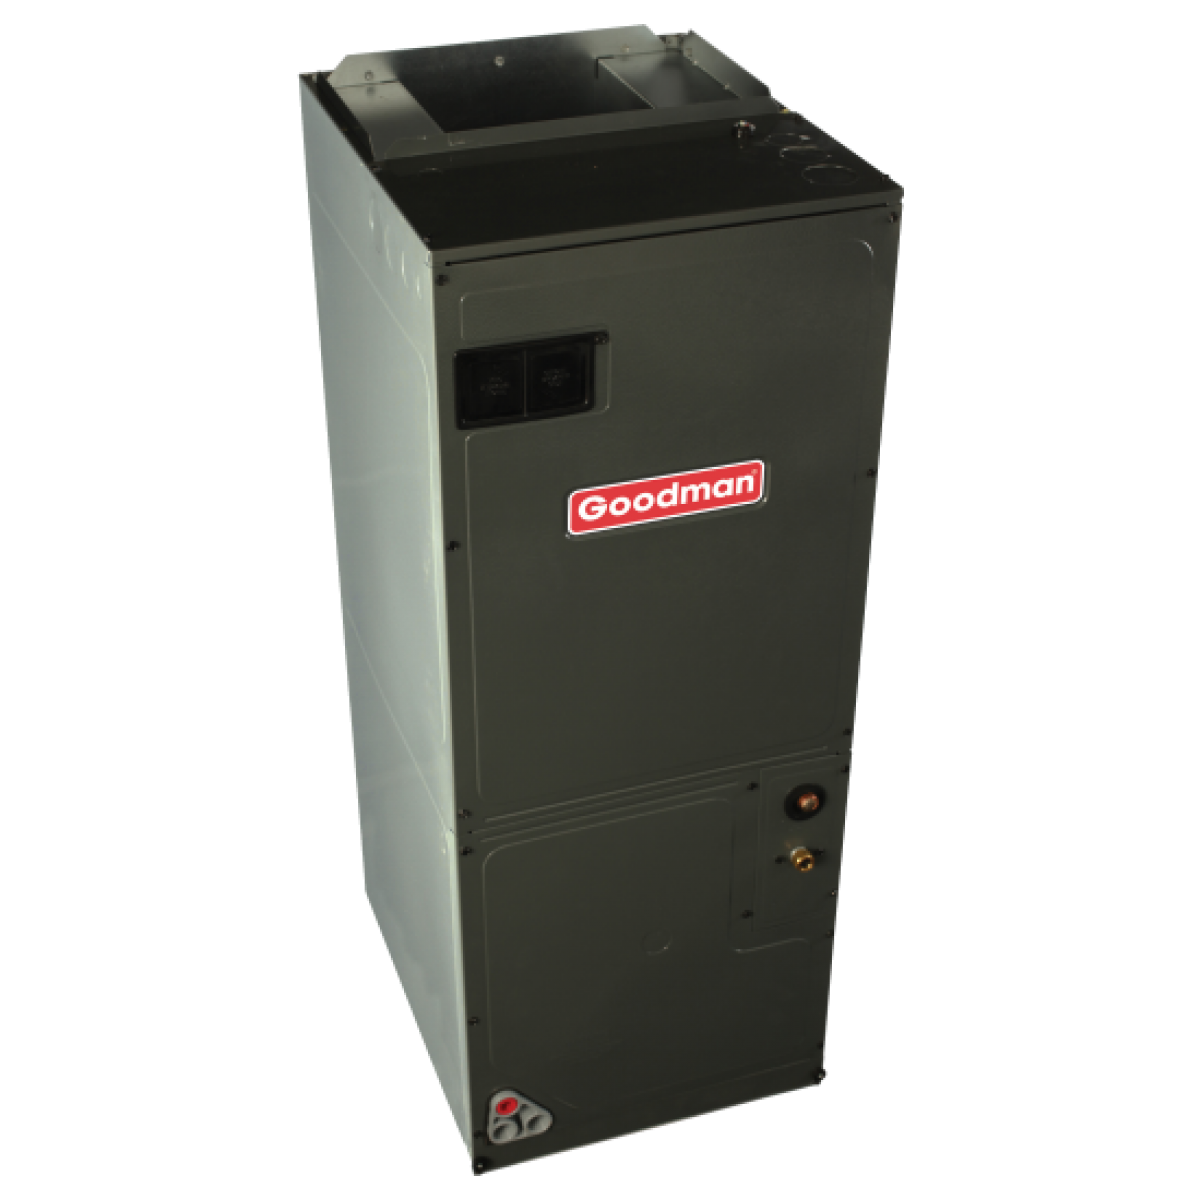 #B01B1F Goodman 14 SEER 2.5 Ton Electric Heat Split System In 2.5  Brand New 3191 Goodman Ac And Heating images with 1200x1200 px on helpvideos.info - Air Conditioners, Air Coolers and more